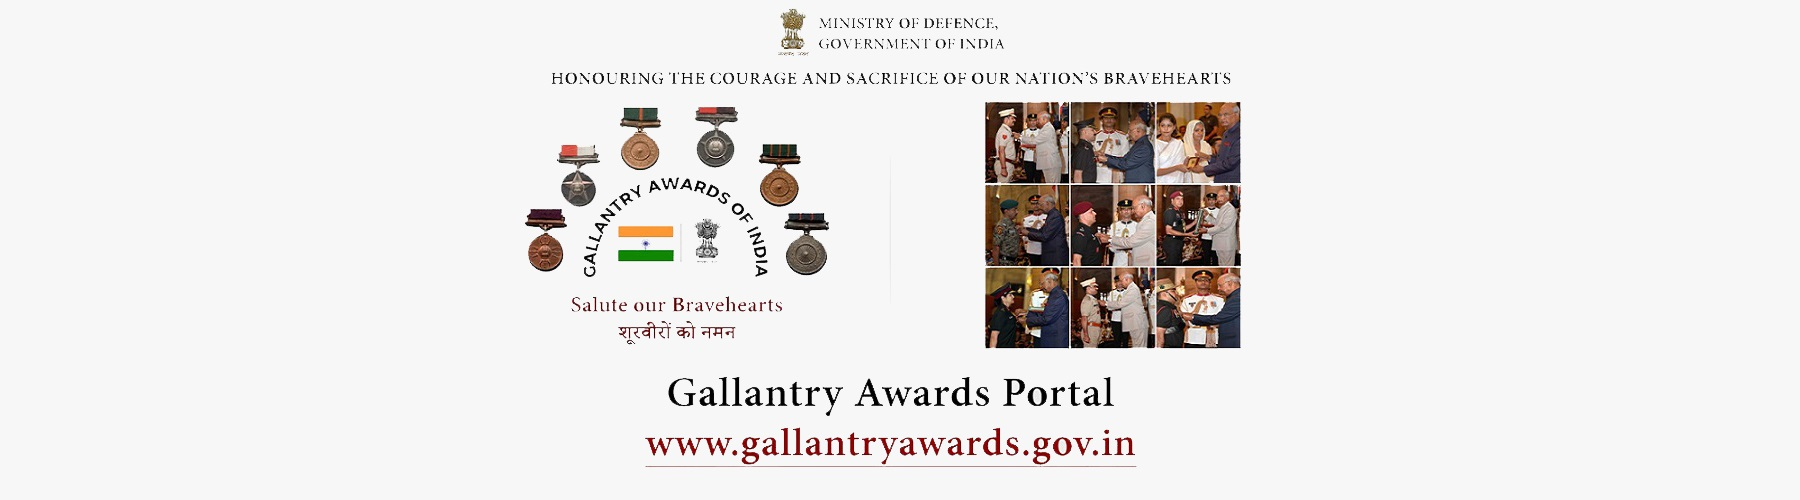 Show your solidarity to the valour and bravery of our soldiers-Gallantry Awards Website -Click here for Registration